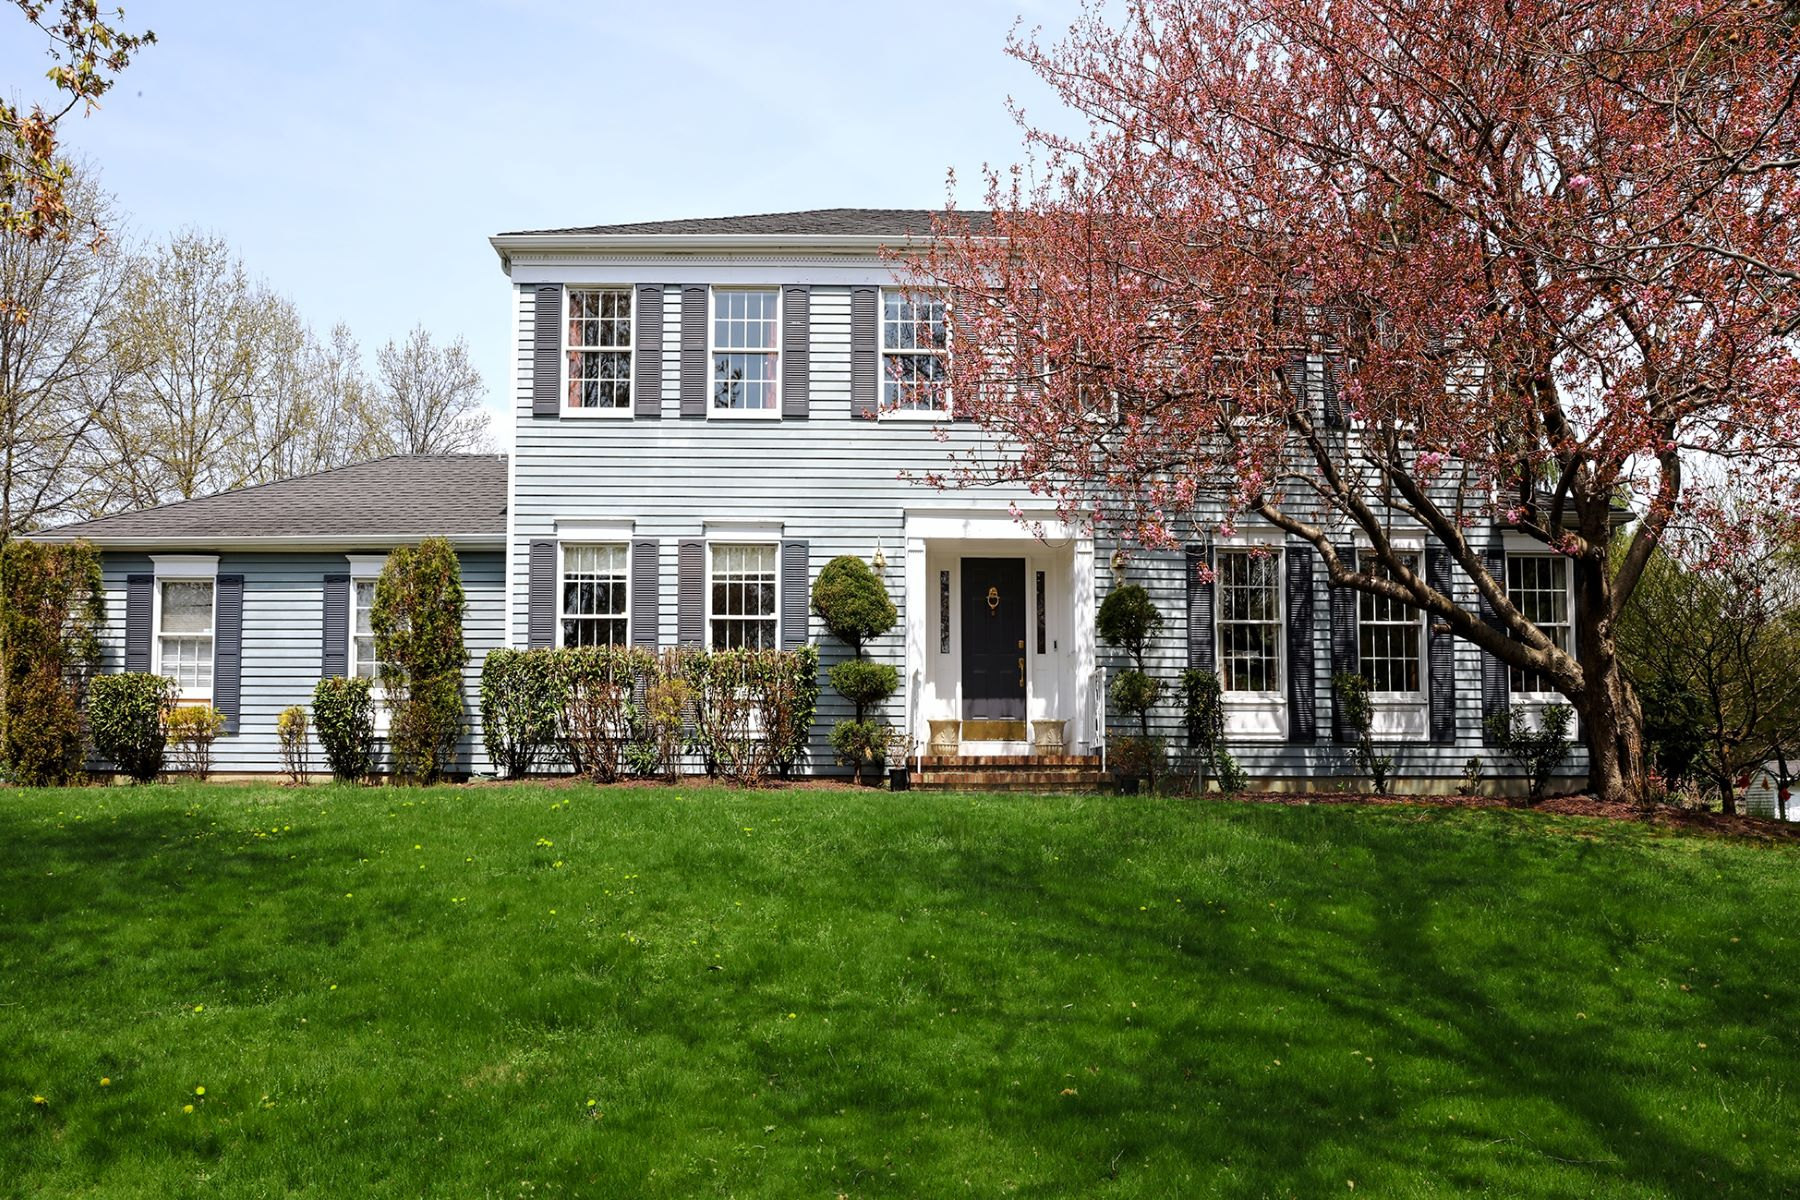 Single Family Homes for Rent at Exceptional Cul-De-Sac Colonial in Princeton Oaks 3 Cranston Court, Princeton Junction, New Jersey 08550 United States